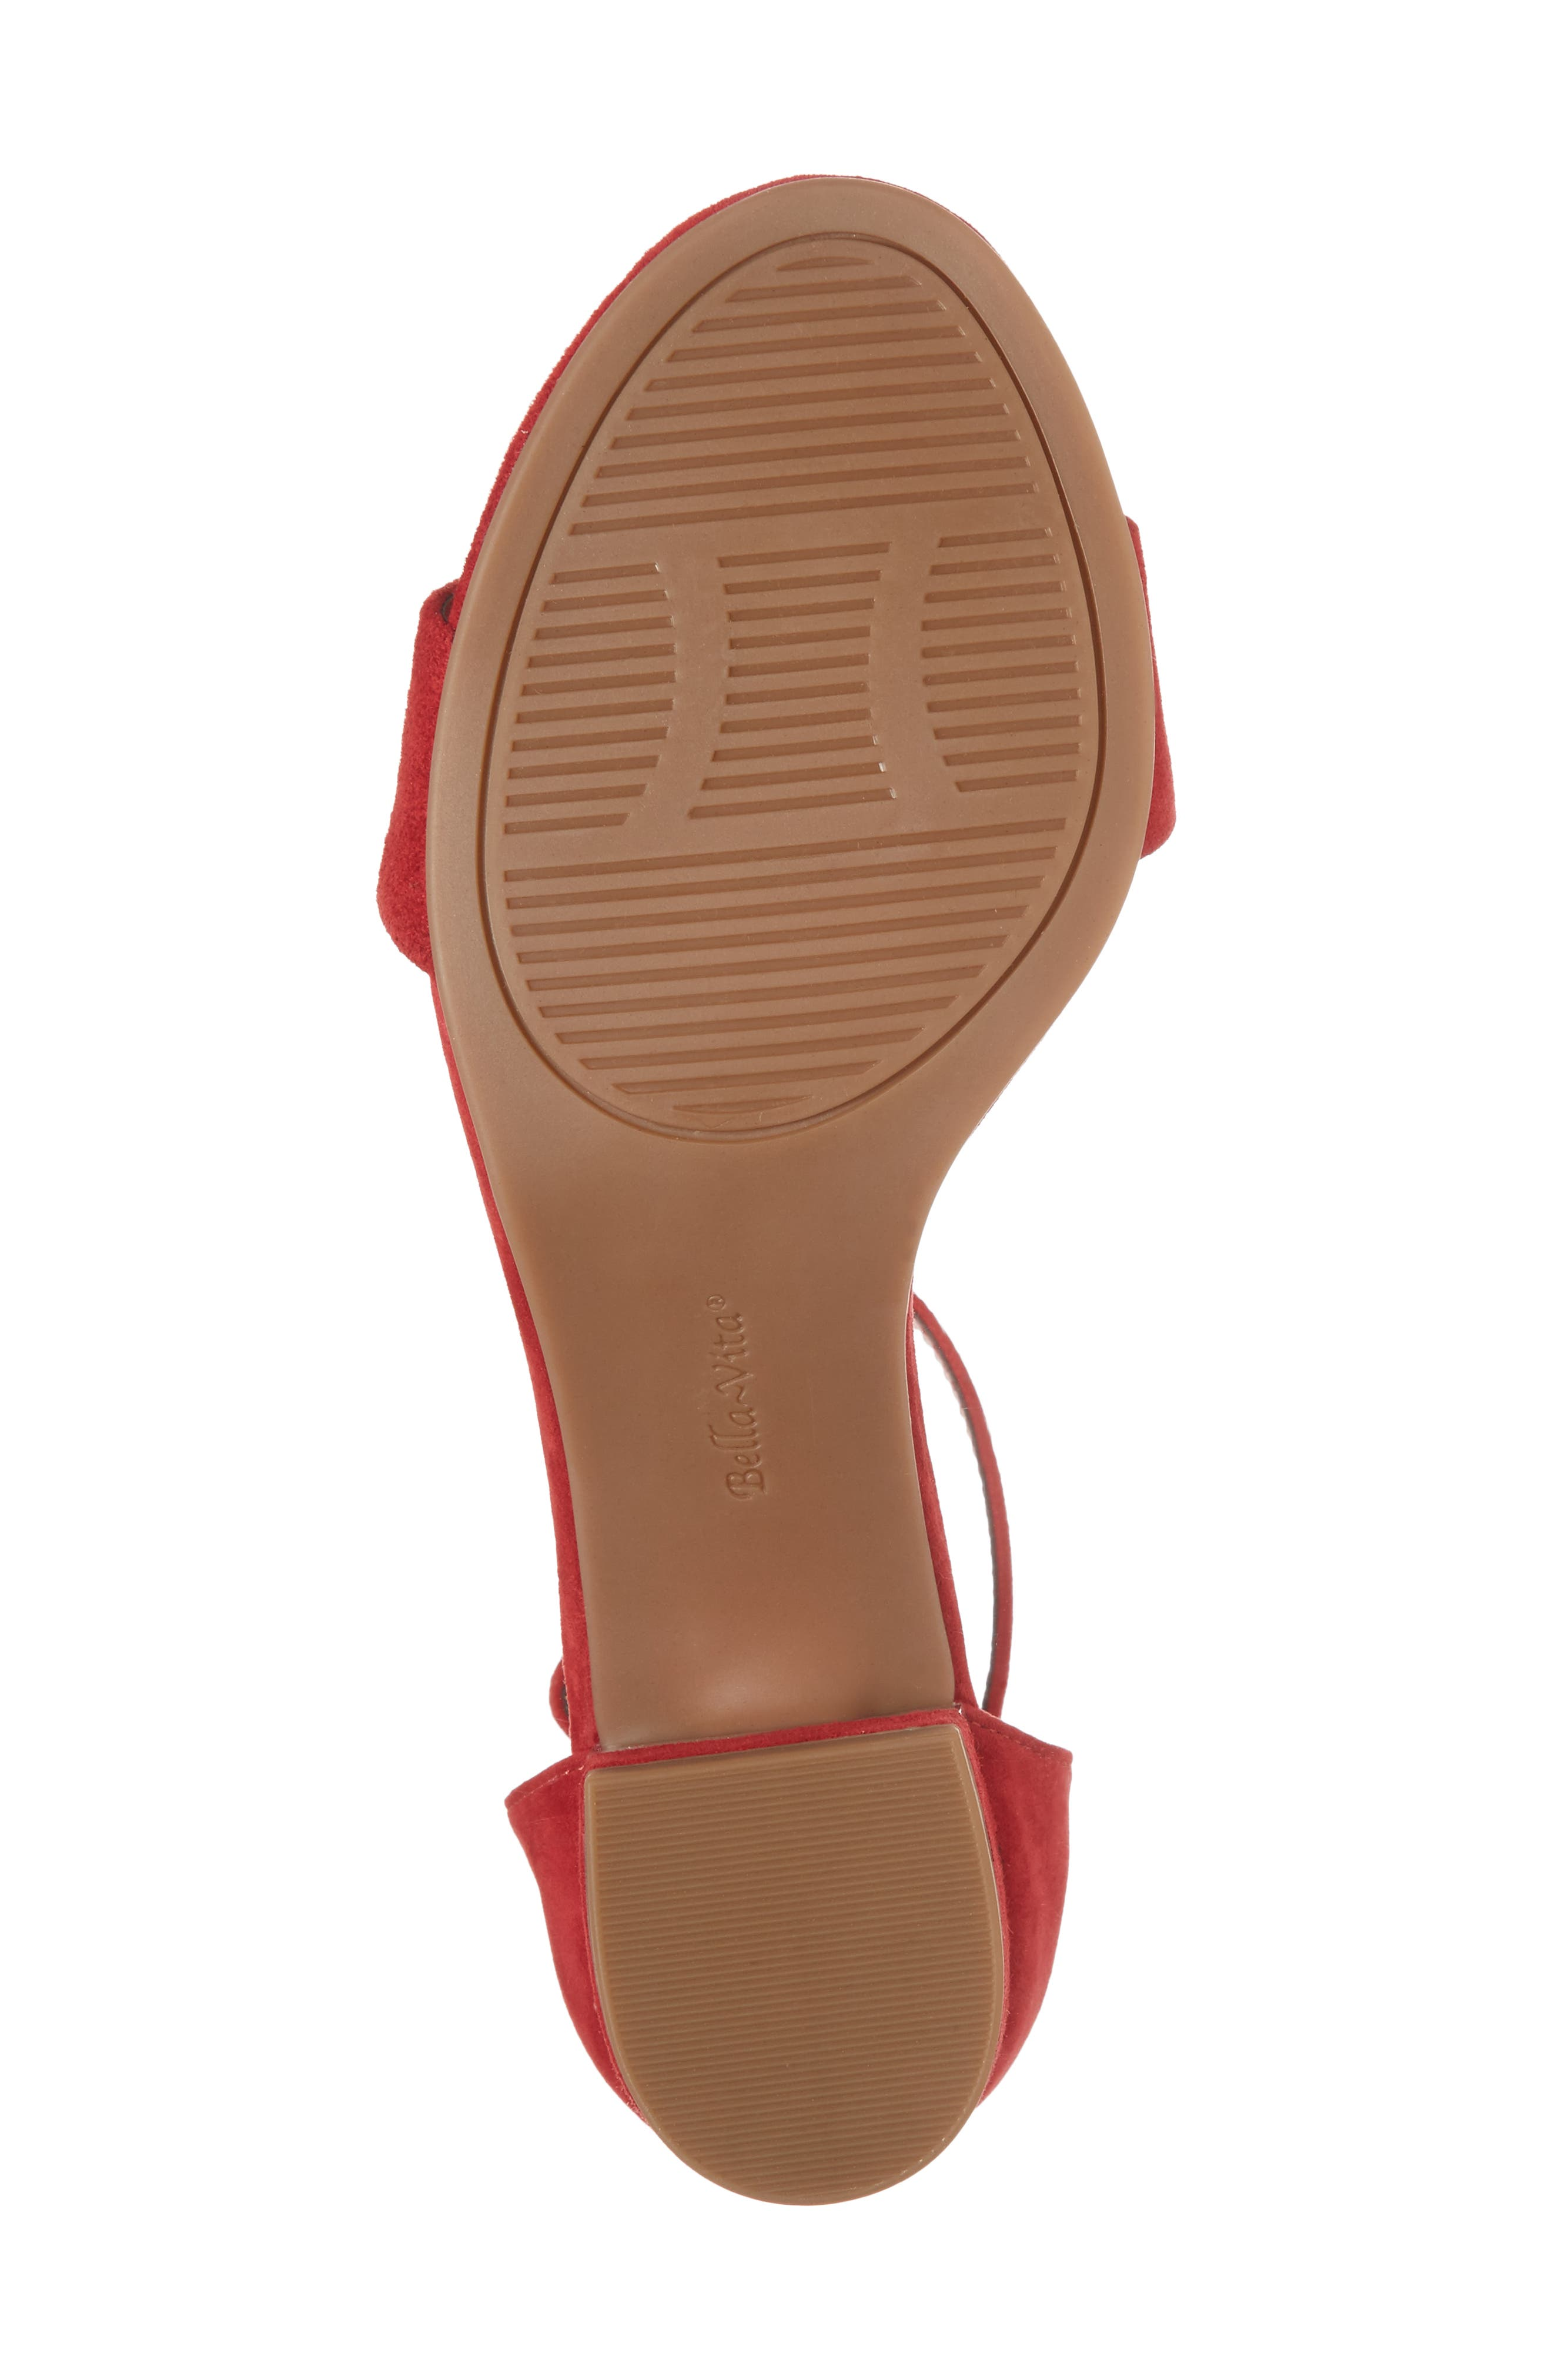 Fitz Block Heel Sandal,                             Alternate thumbnail 6, color,                             Red Suede